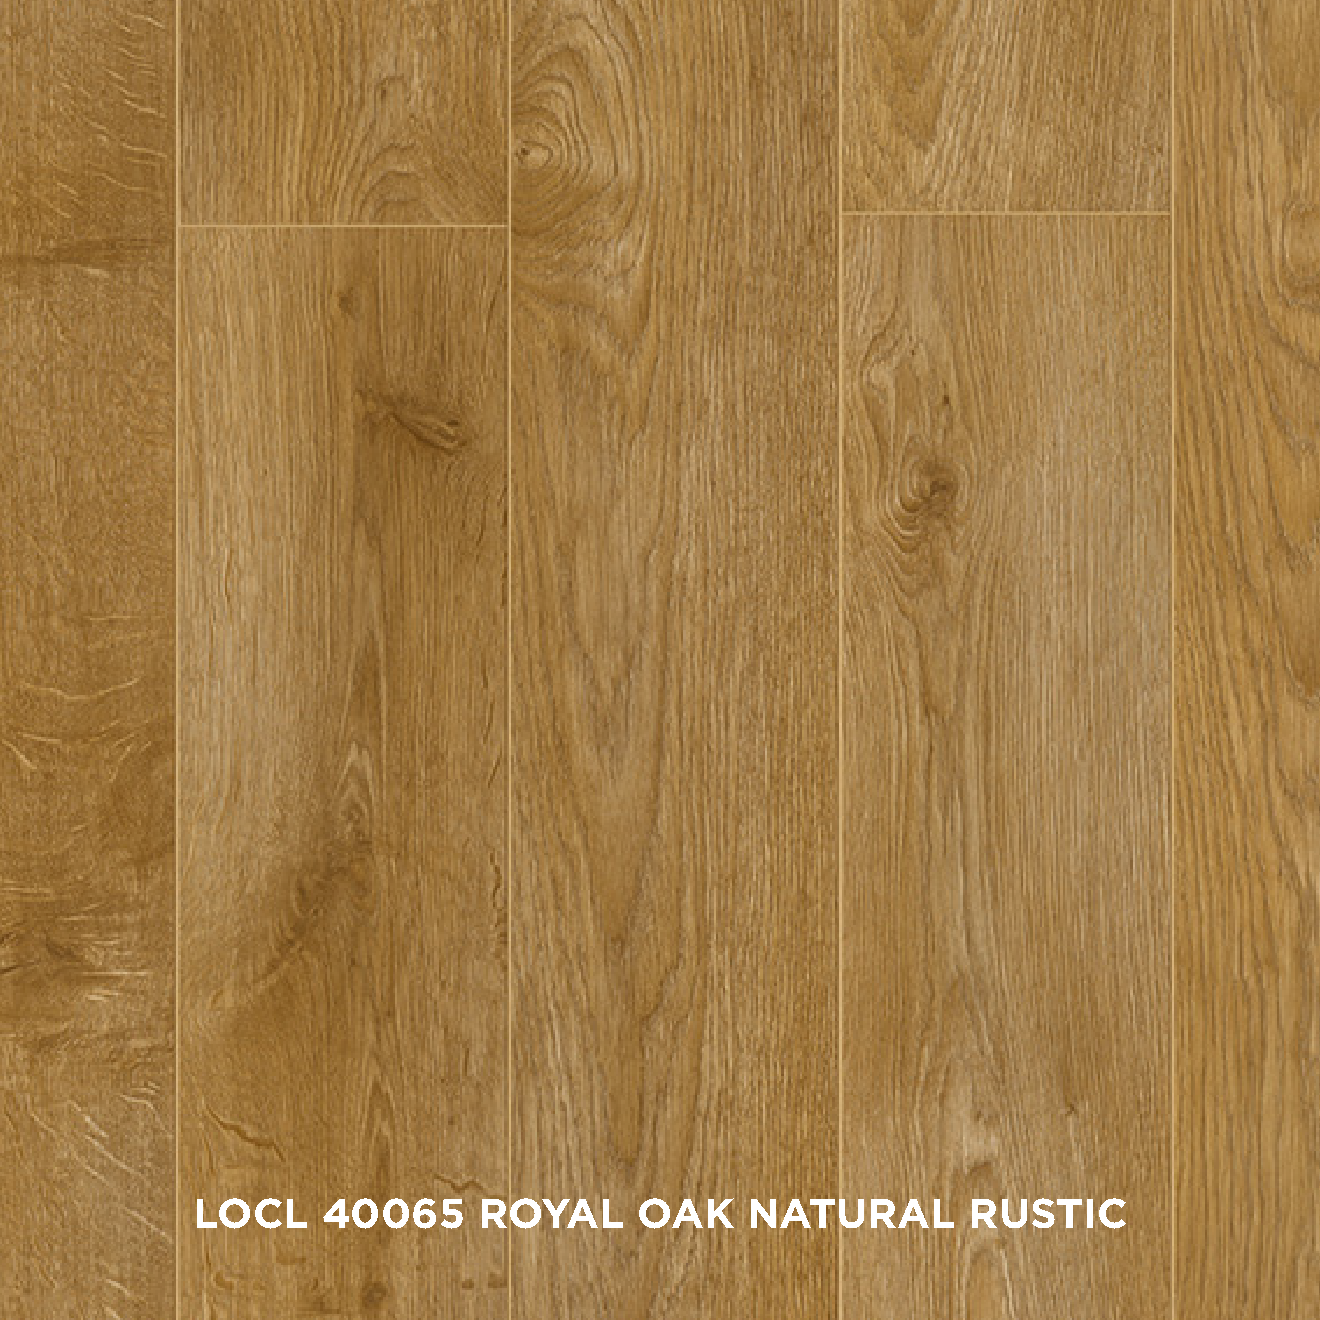 LOCL 40065 ROYAL OAK NATURAL RUSTIC